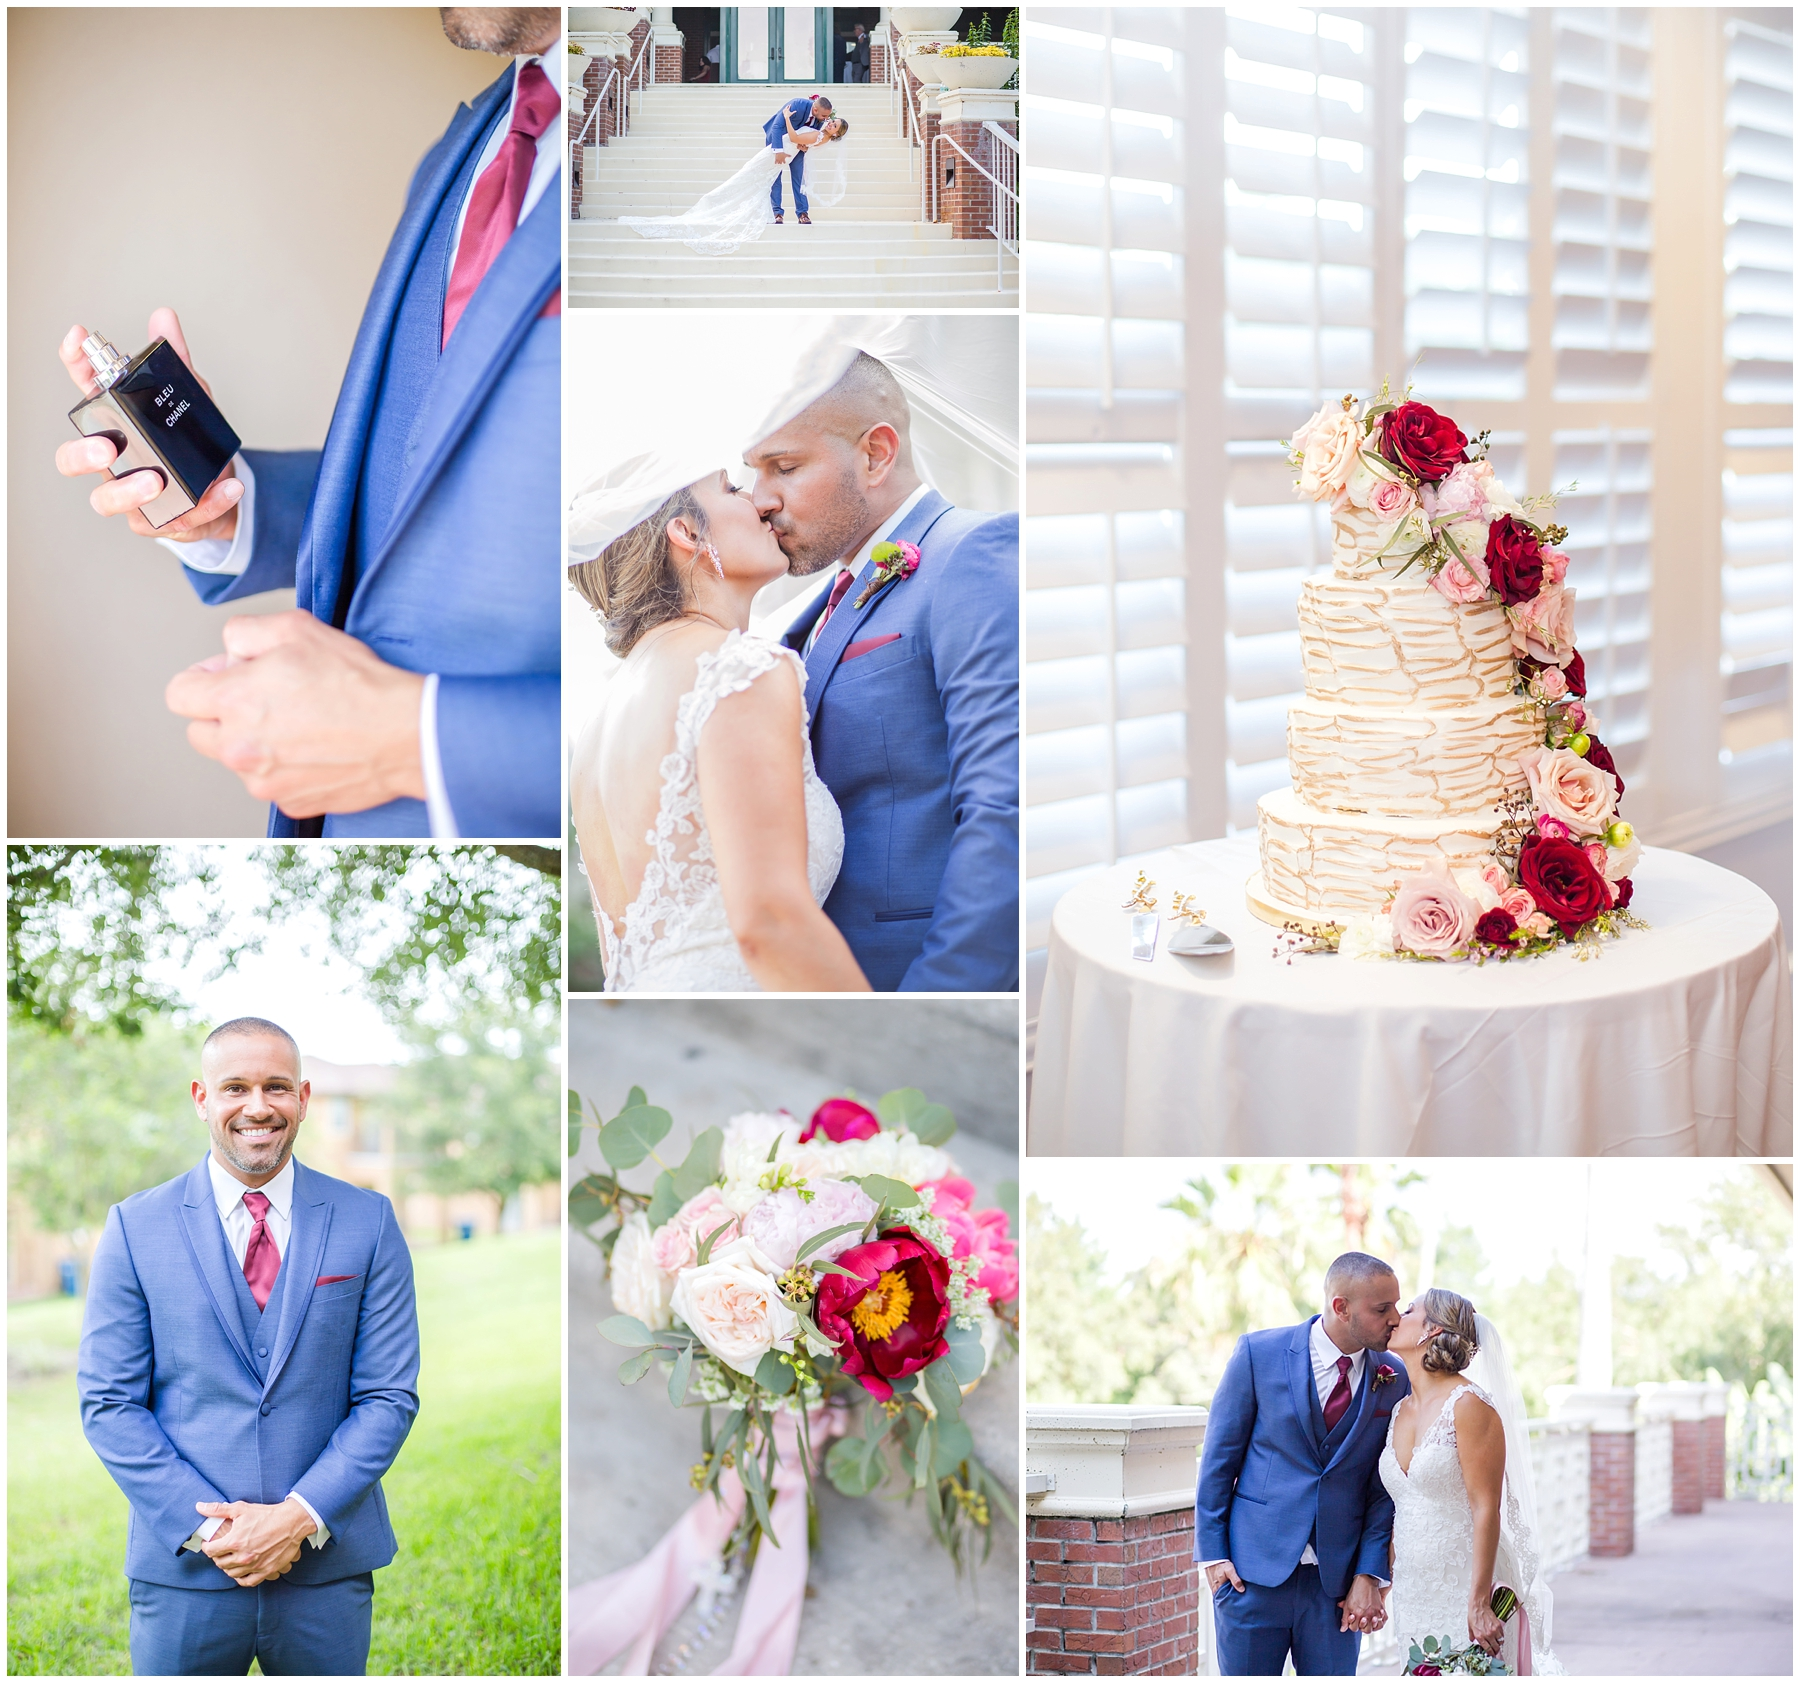 I loved second shooting this wedding with Sydney. They were such an adorable couple to capture! And I just love the wedding details, and the colors!